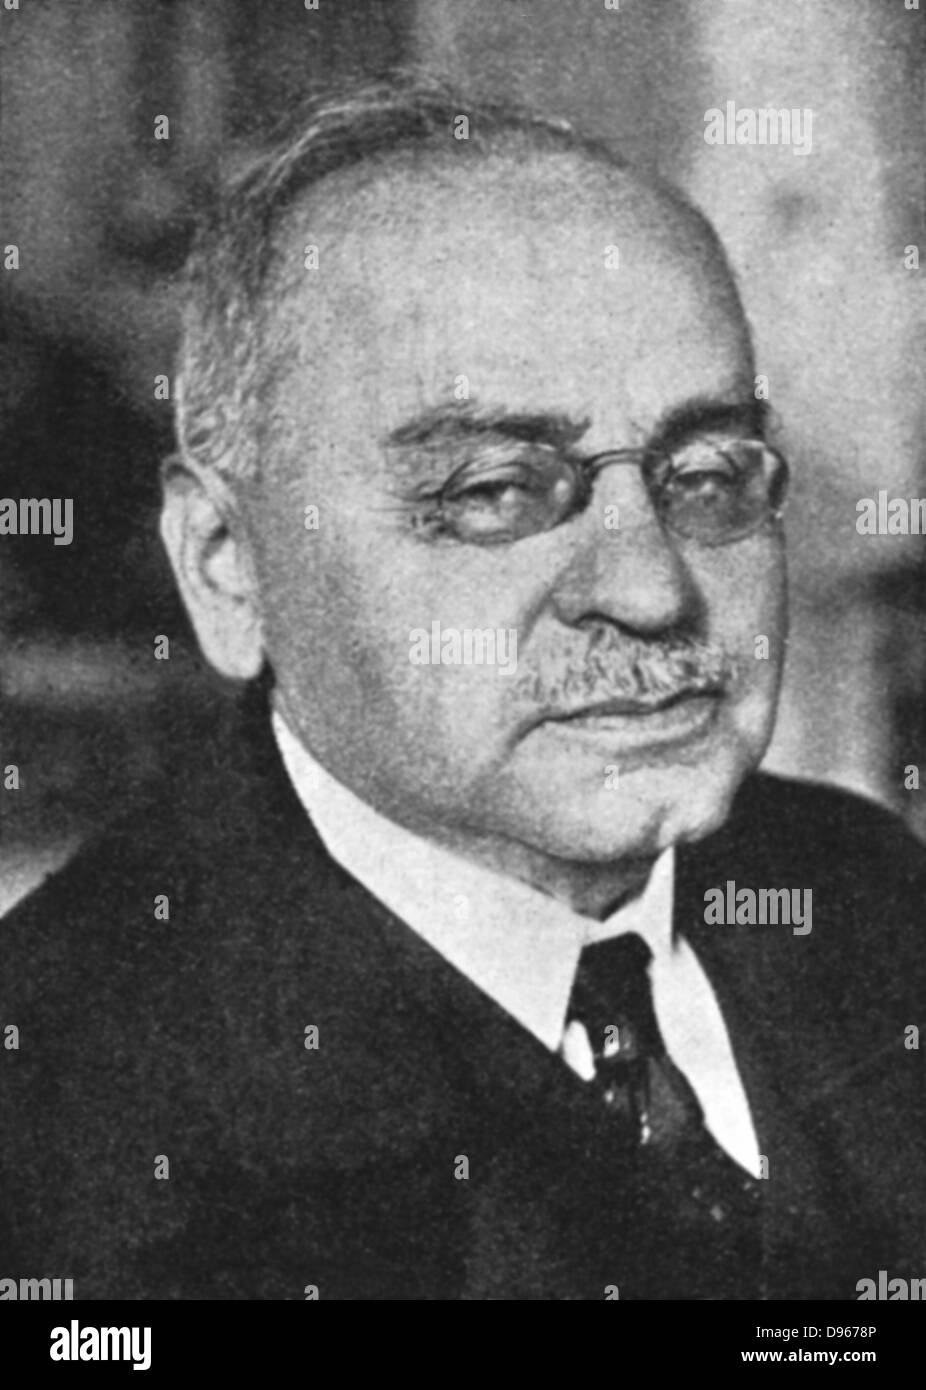 a biography of alfred adler an austrian psychologist Alfred adler (february 7, 1870 - may 28, 1937) was an austrian medical doctor, psychologist and founder of the school of individual psychology in collaboration with sigmund freud and a.